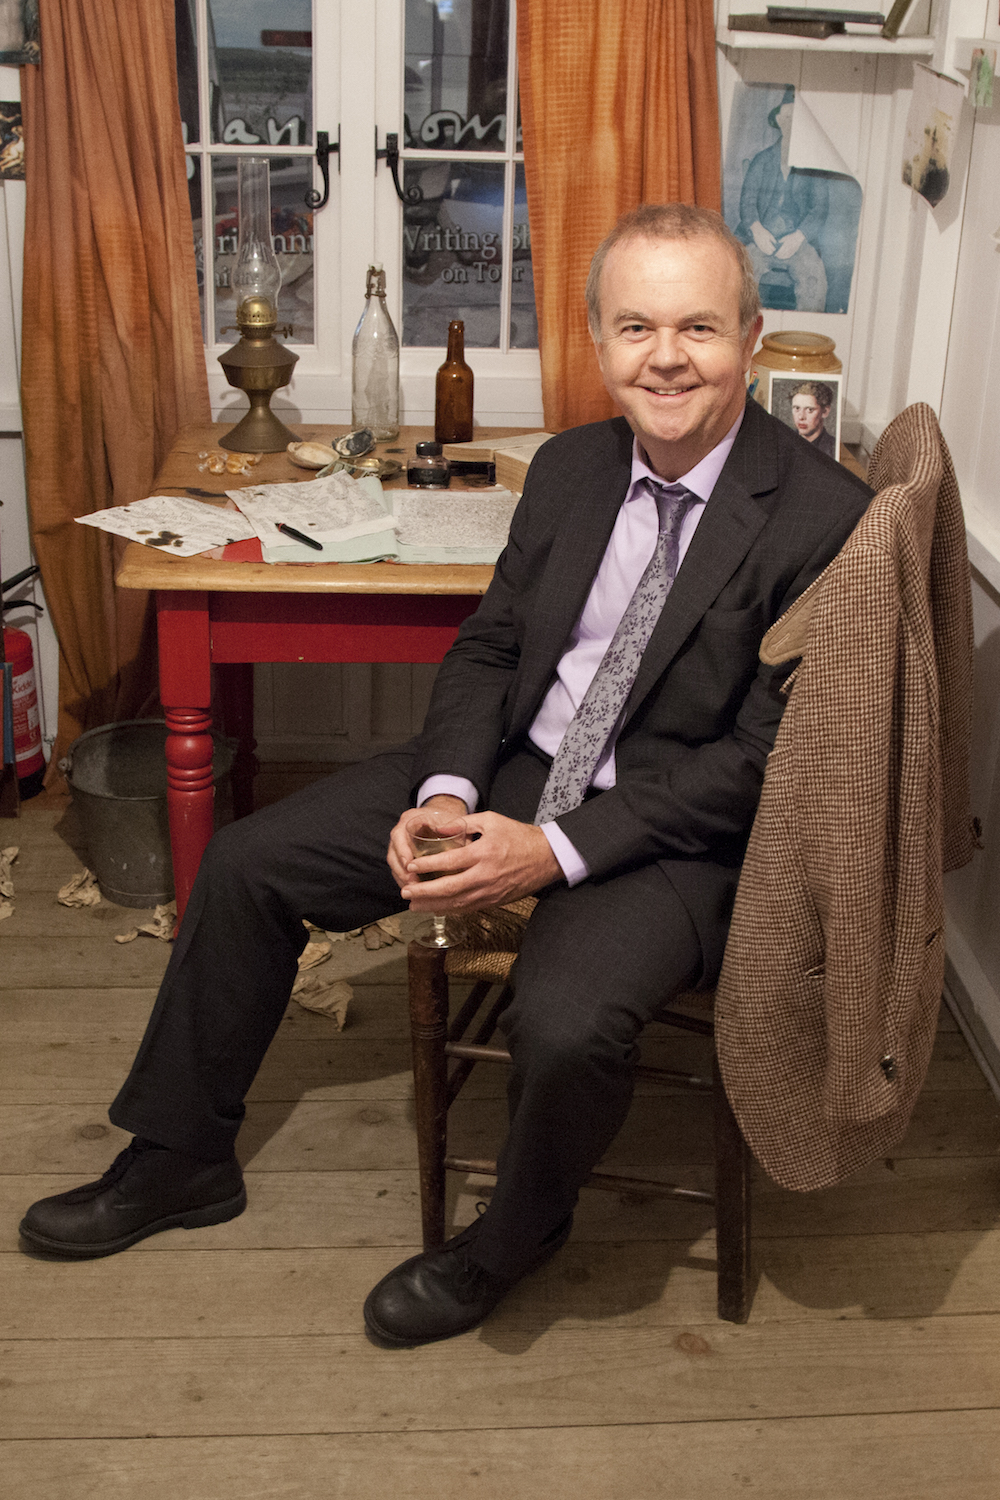 Journalist and satirist Ian Hislop.